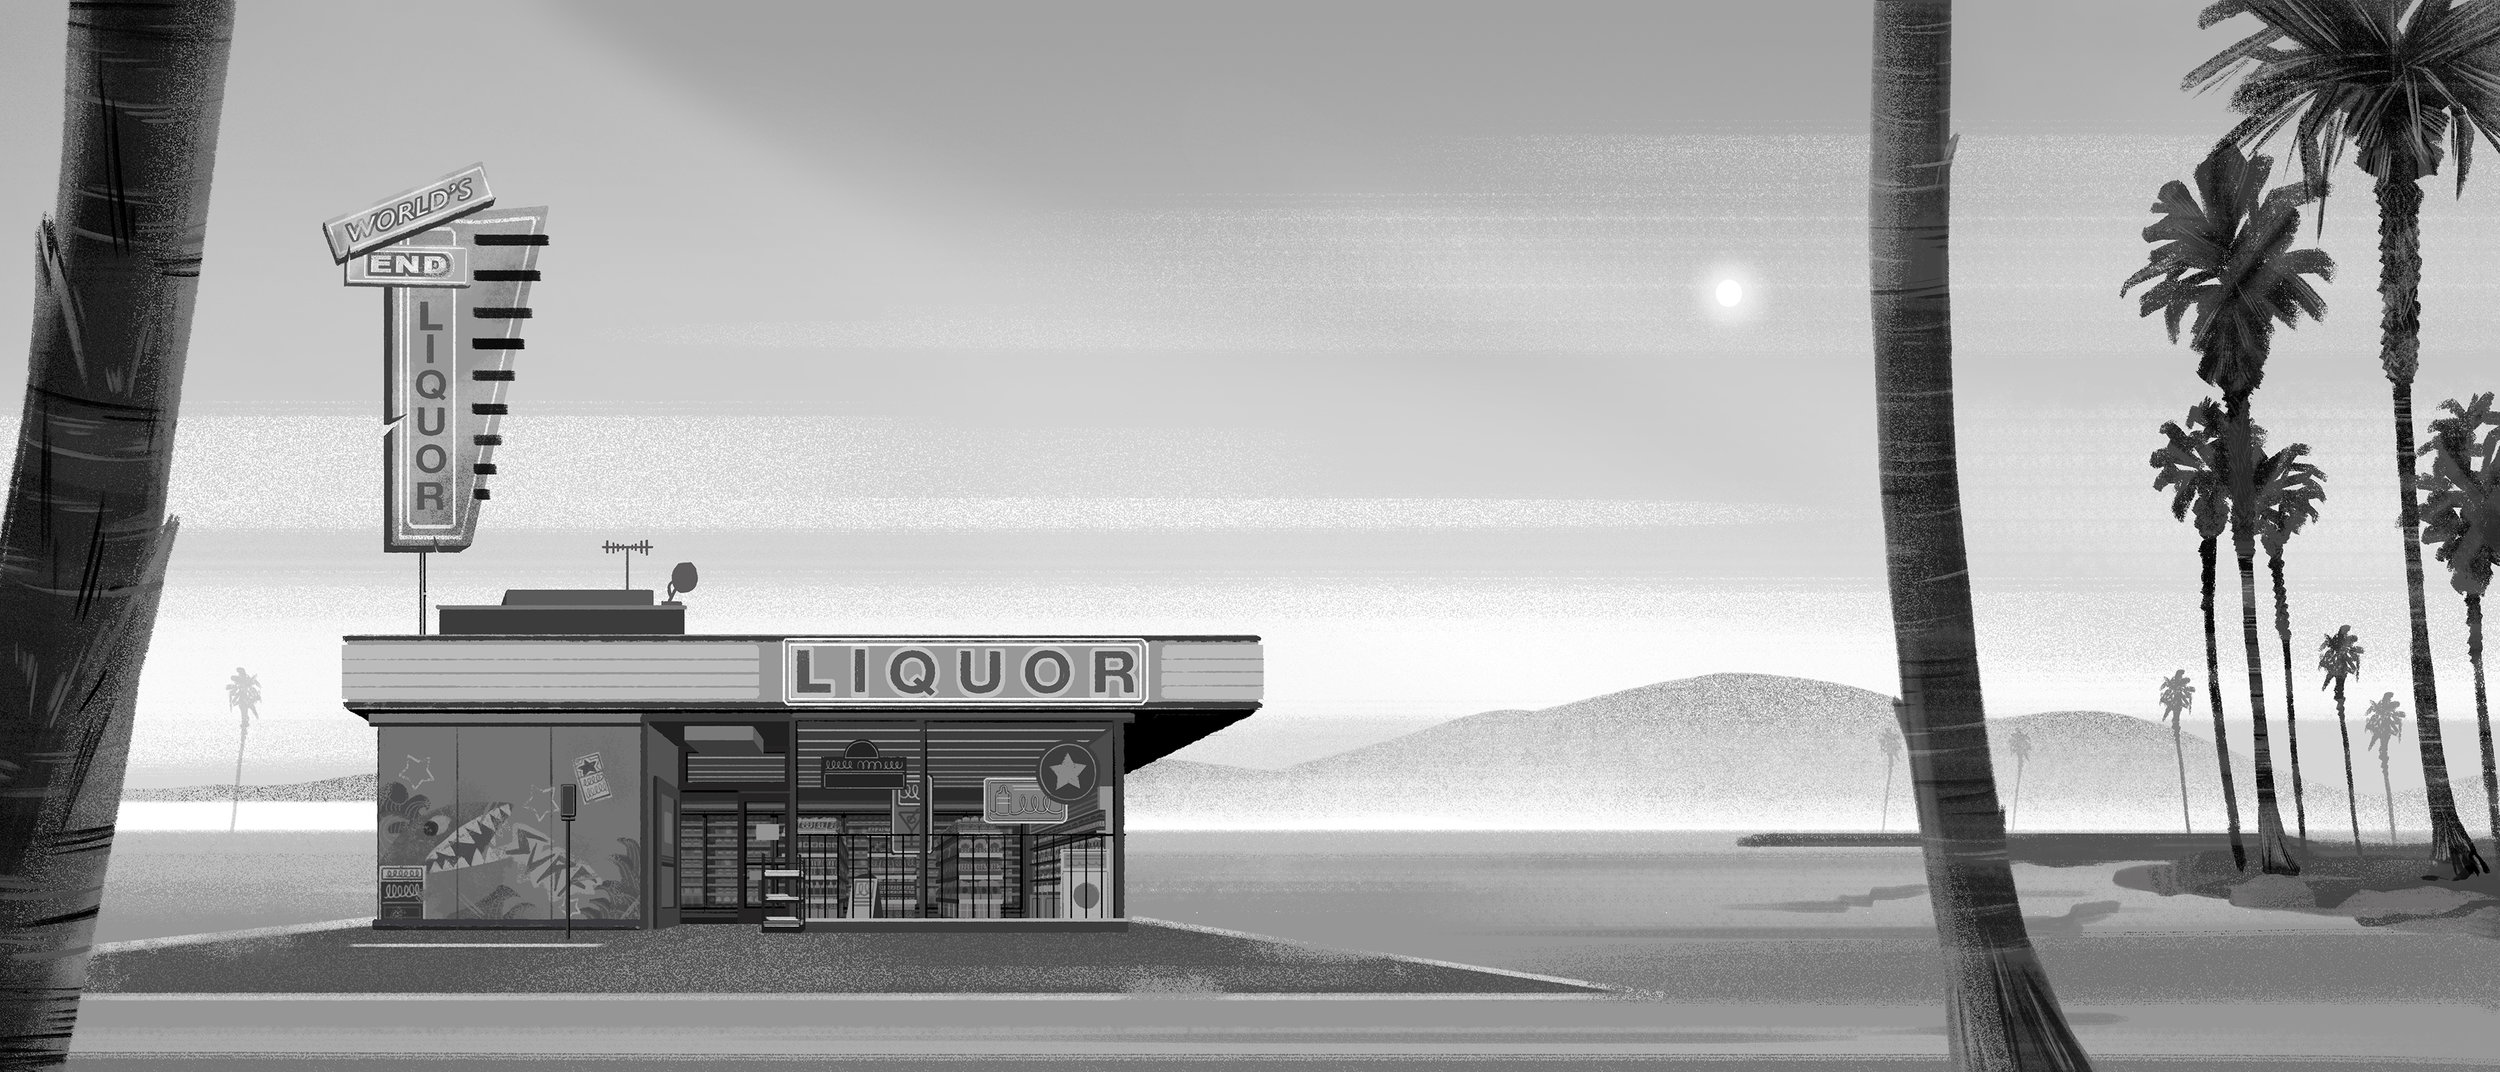 surfs liquor.jpg